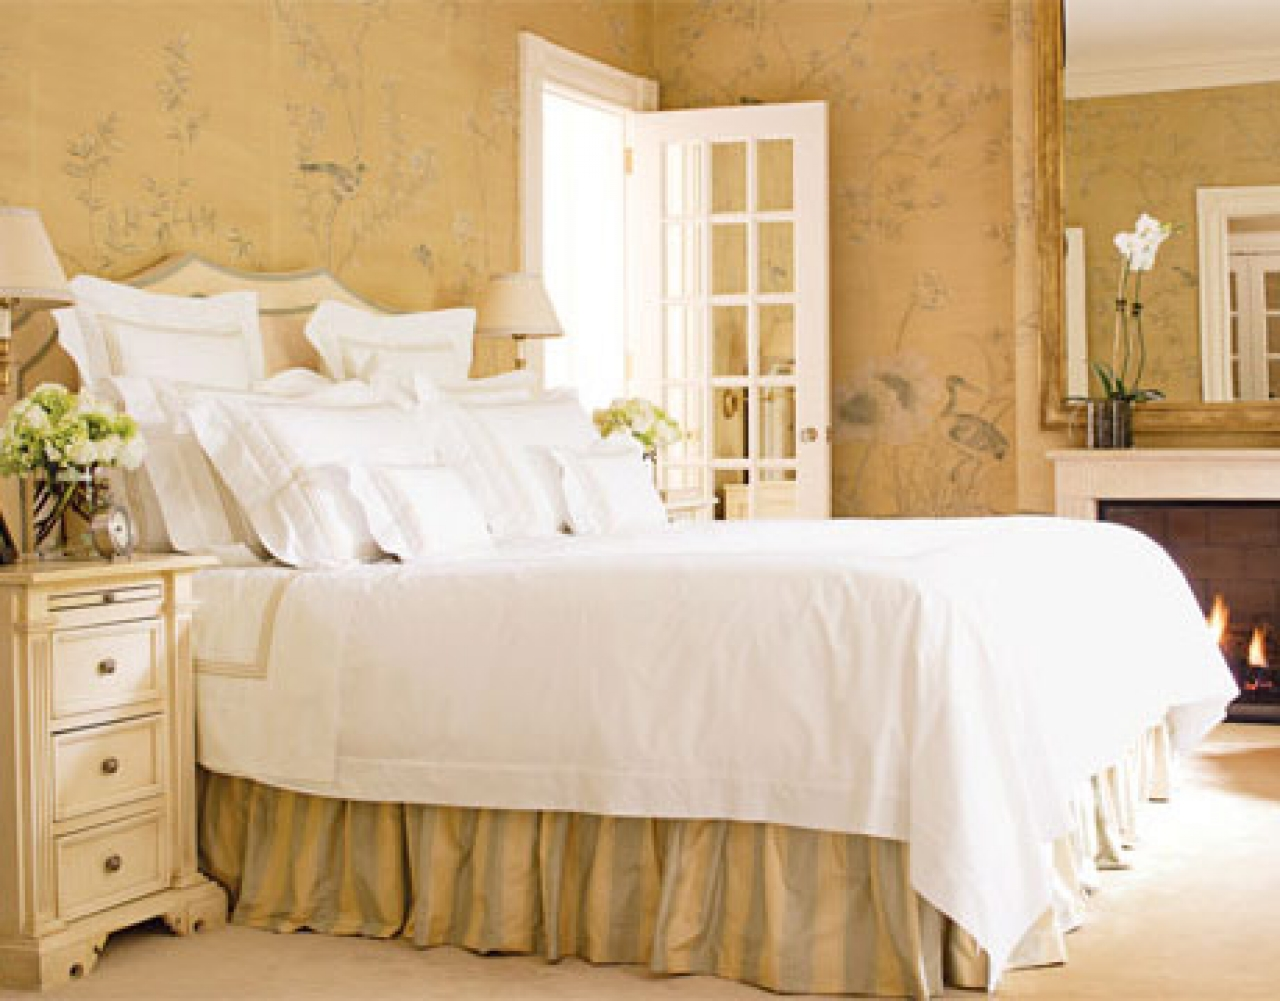 Custom hand painted wallpaper in bedroom designed by alessandra branca 1280x1001